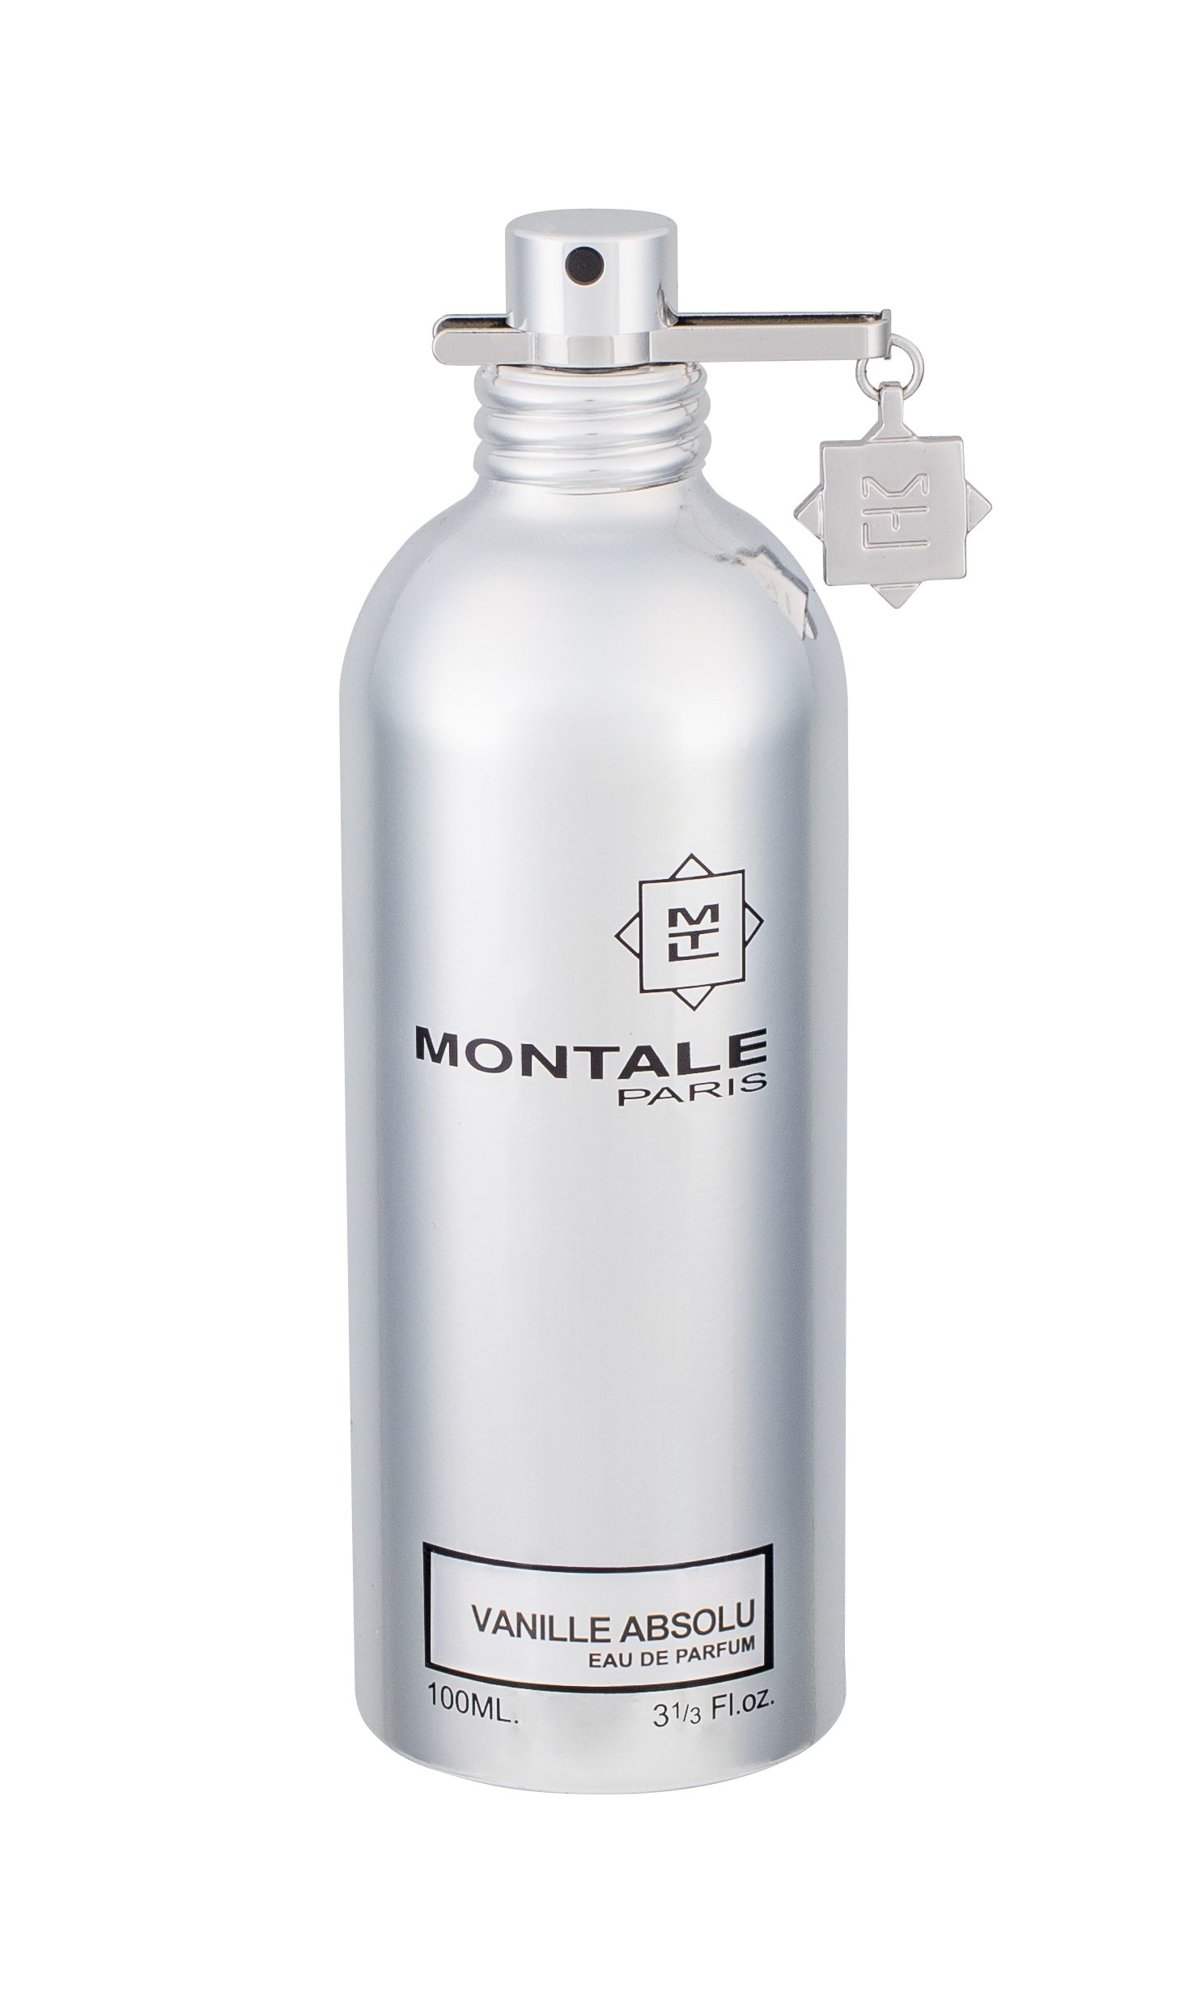 Montale Paris Vanille Absolu EDP 100ml